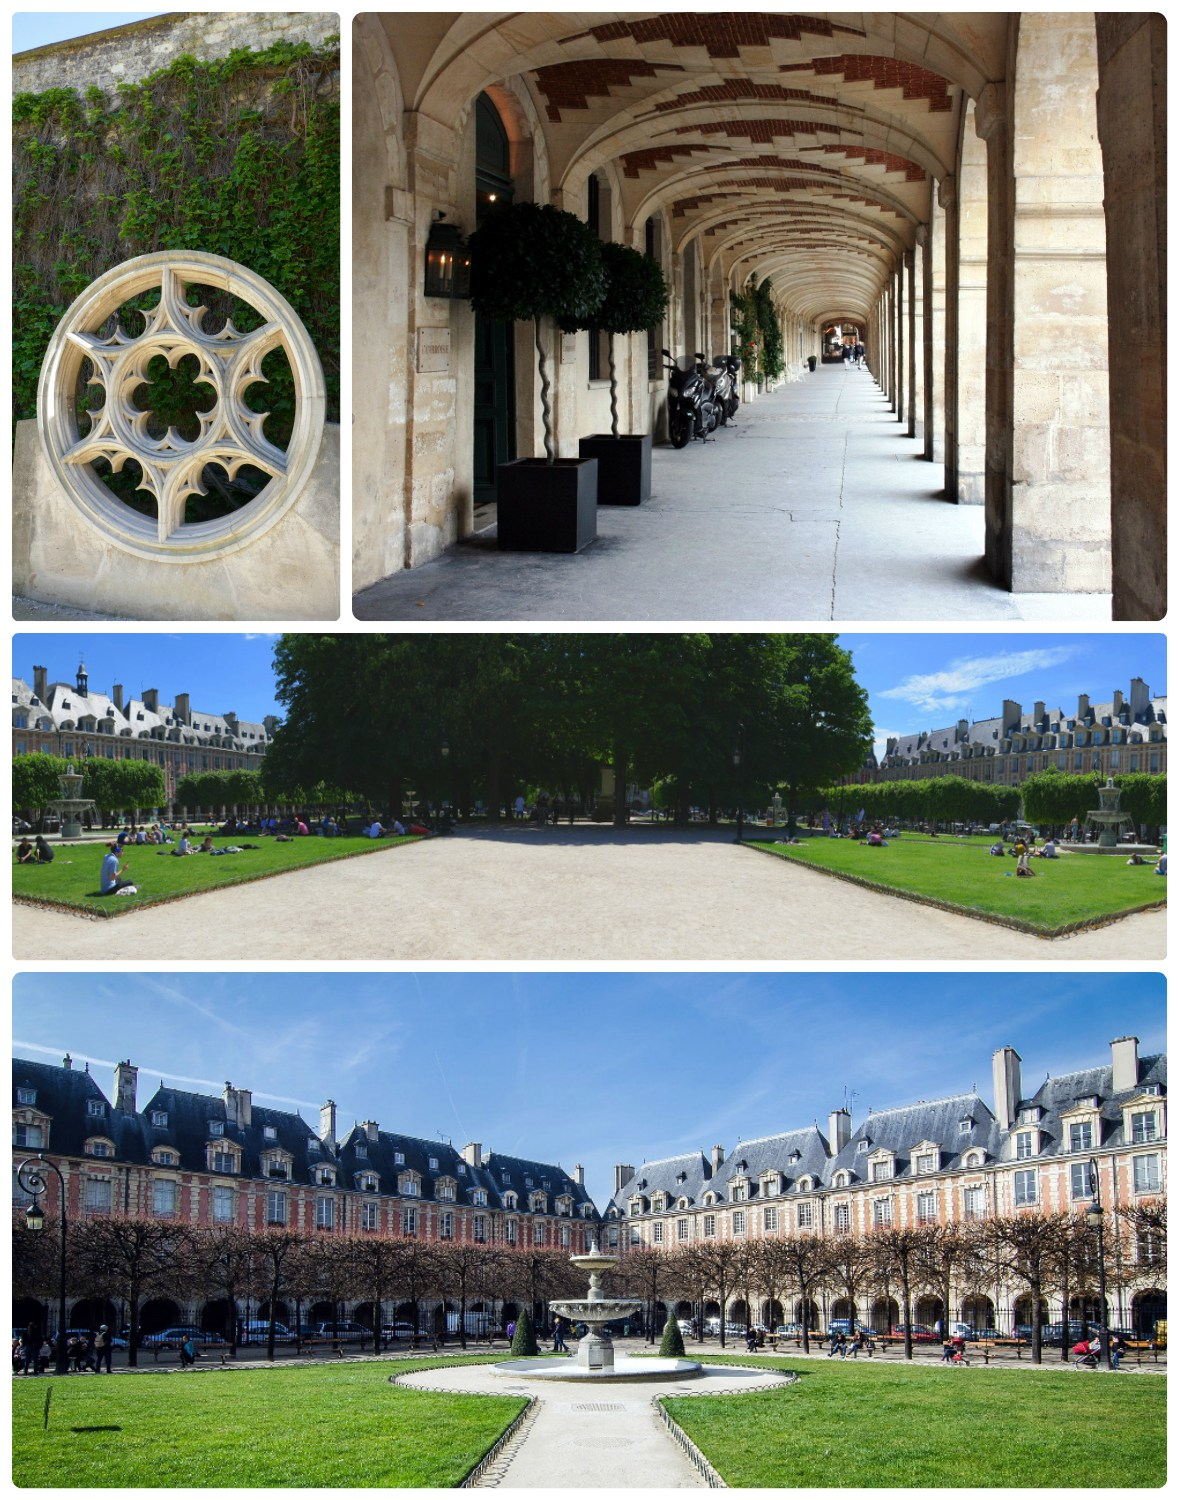 Clockwise (from the top): Around the corner from Place des Vosges we discovered the garden at Hotel de Sully, the archway between the garden and the homes surrounding the square, a panorama of the garden that shows the corner fountains and the row of trees that provide shade, the beautiful 17th and 18th century homes that surround the square.